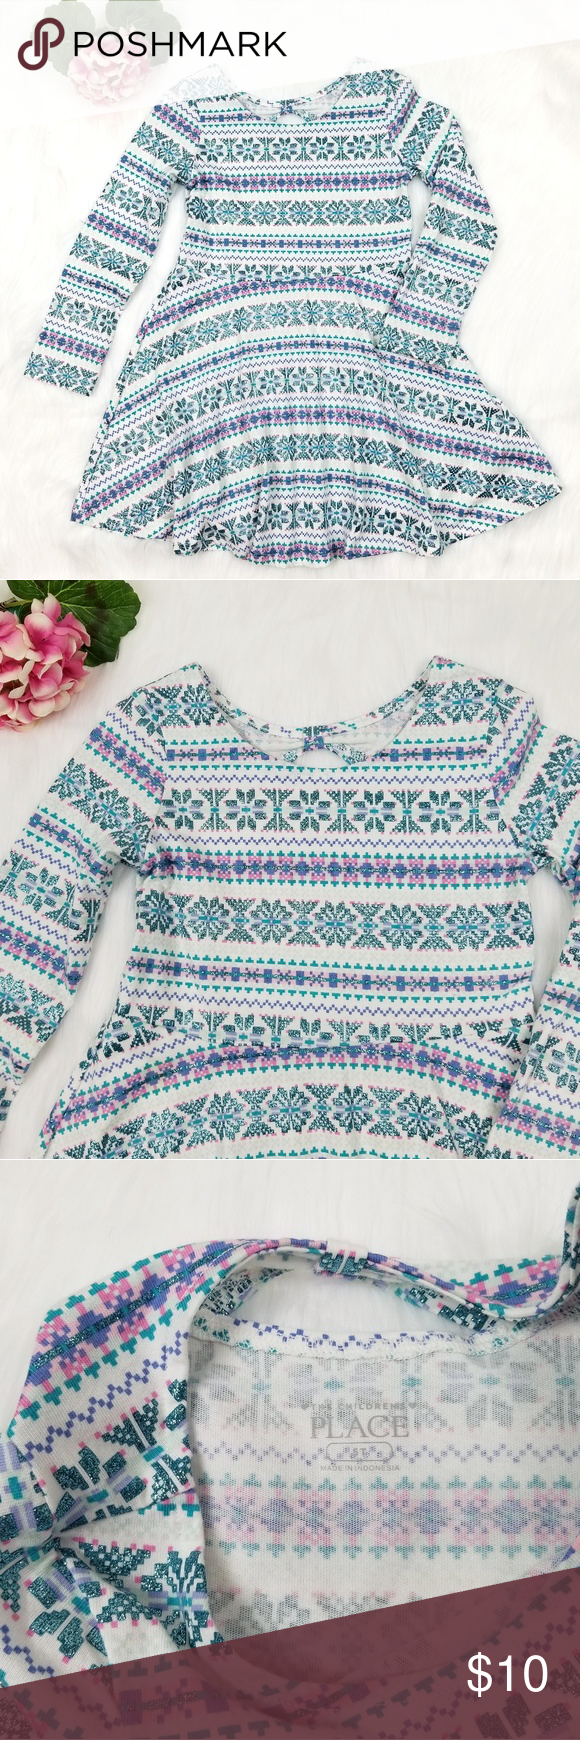 The Children S Place Long Sleeve Dress 5t Dresses 5t The Children S Place Place Dress [ 1740 x 580 Pixel ]